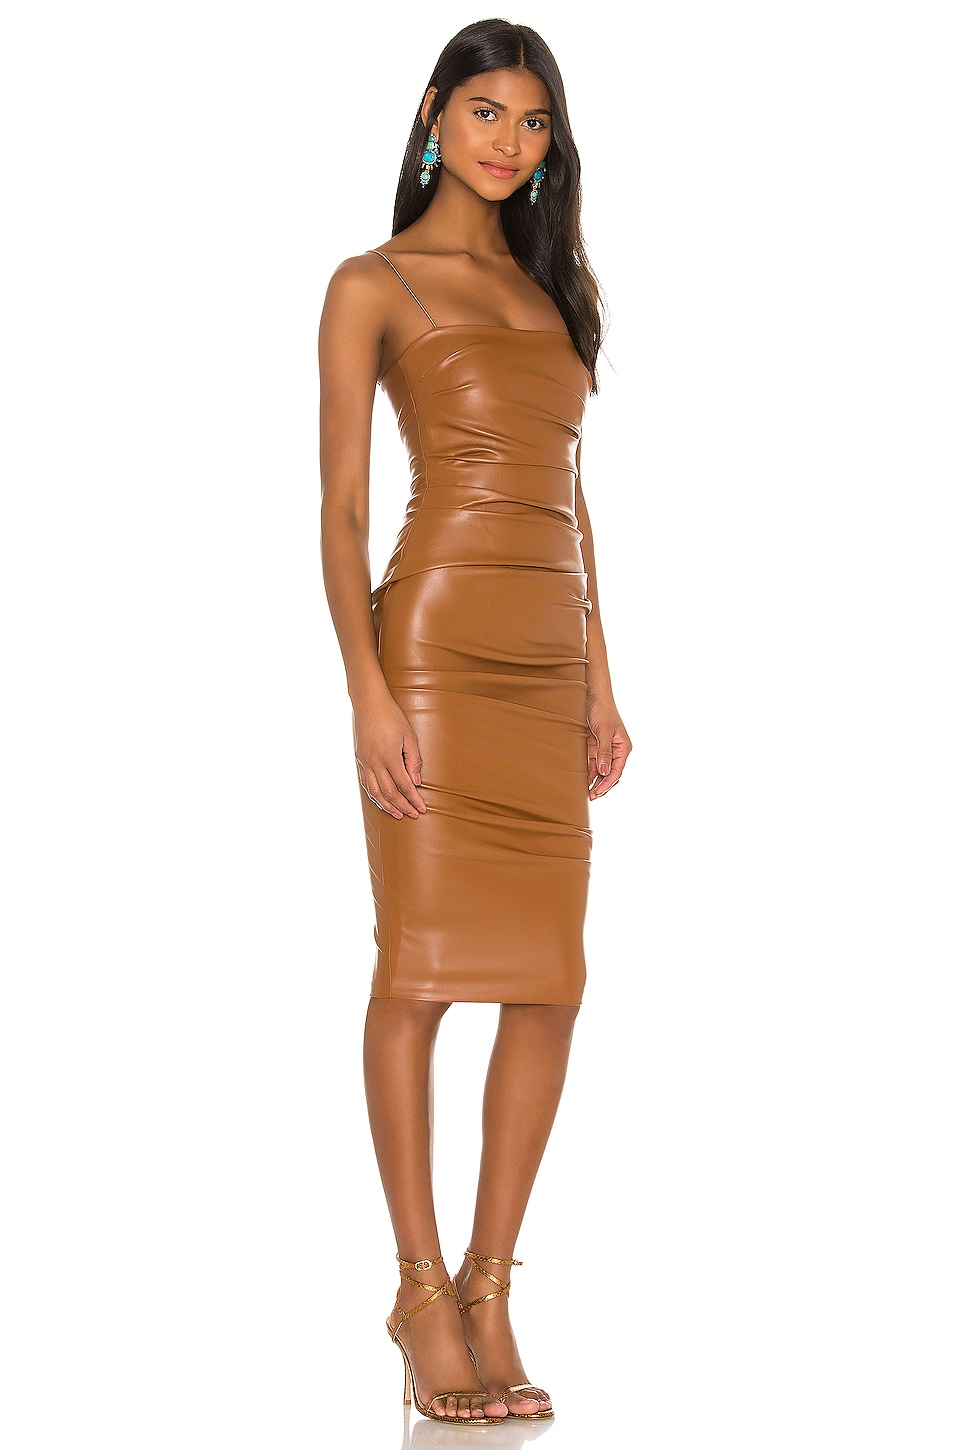 Posse x REVOLVE Faux Leather Midi Dress, view 2, click to view large image.